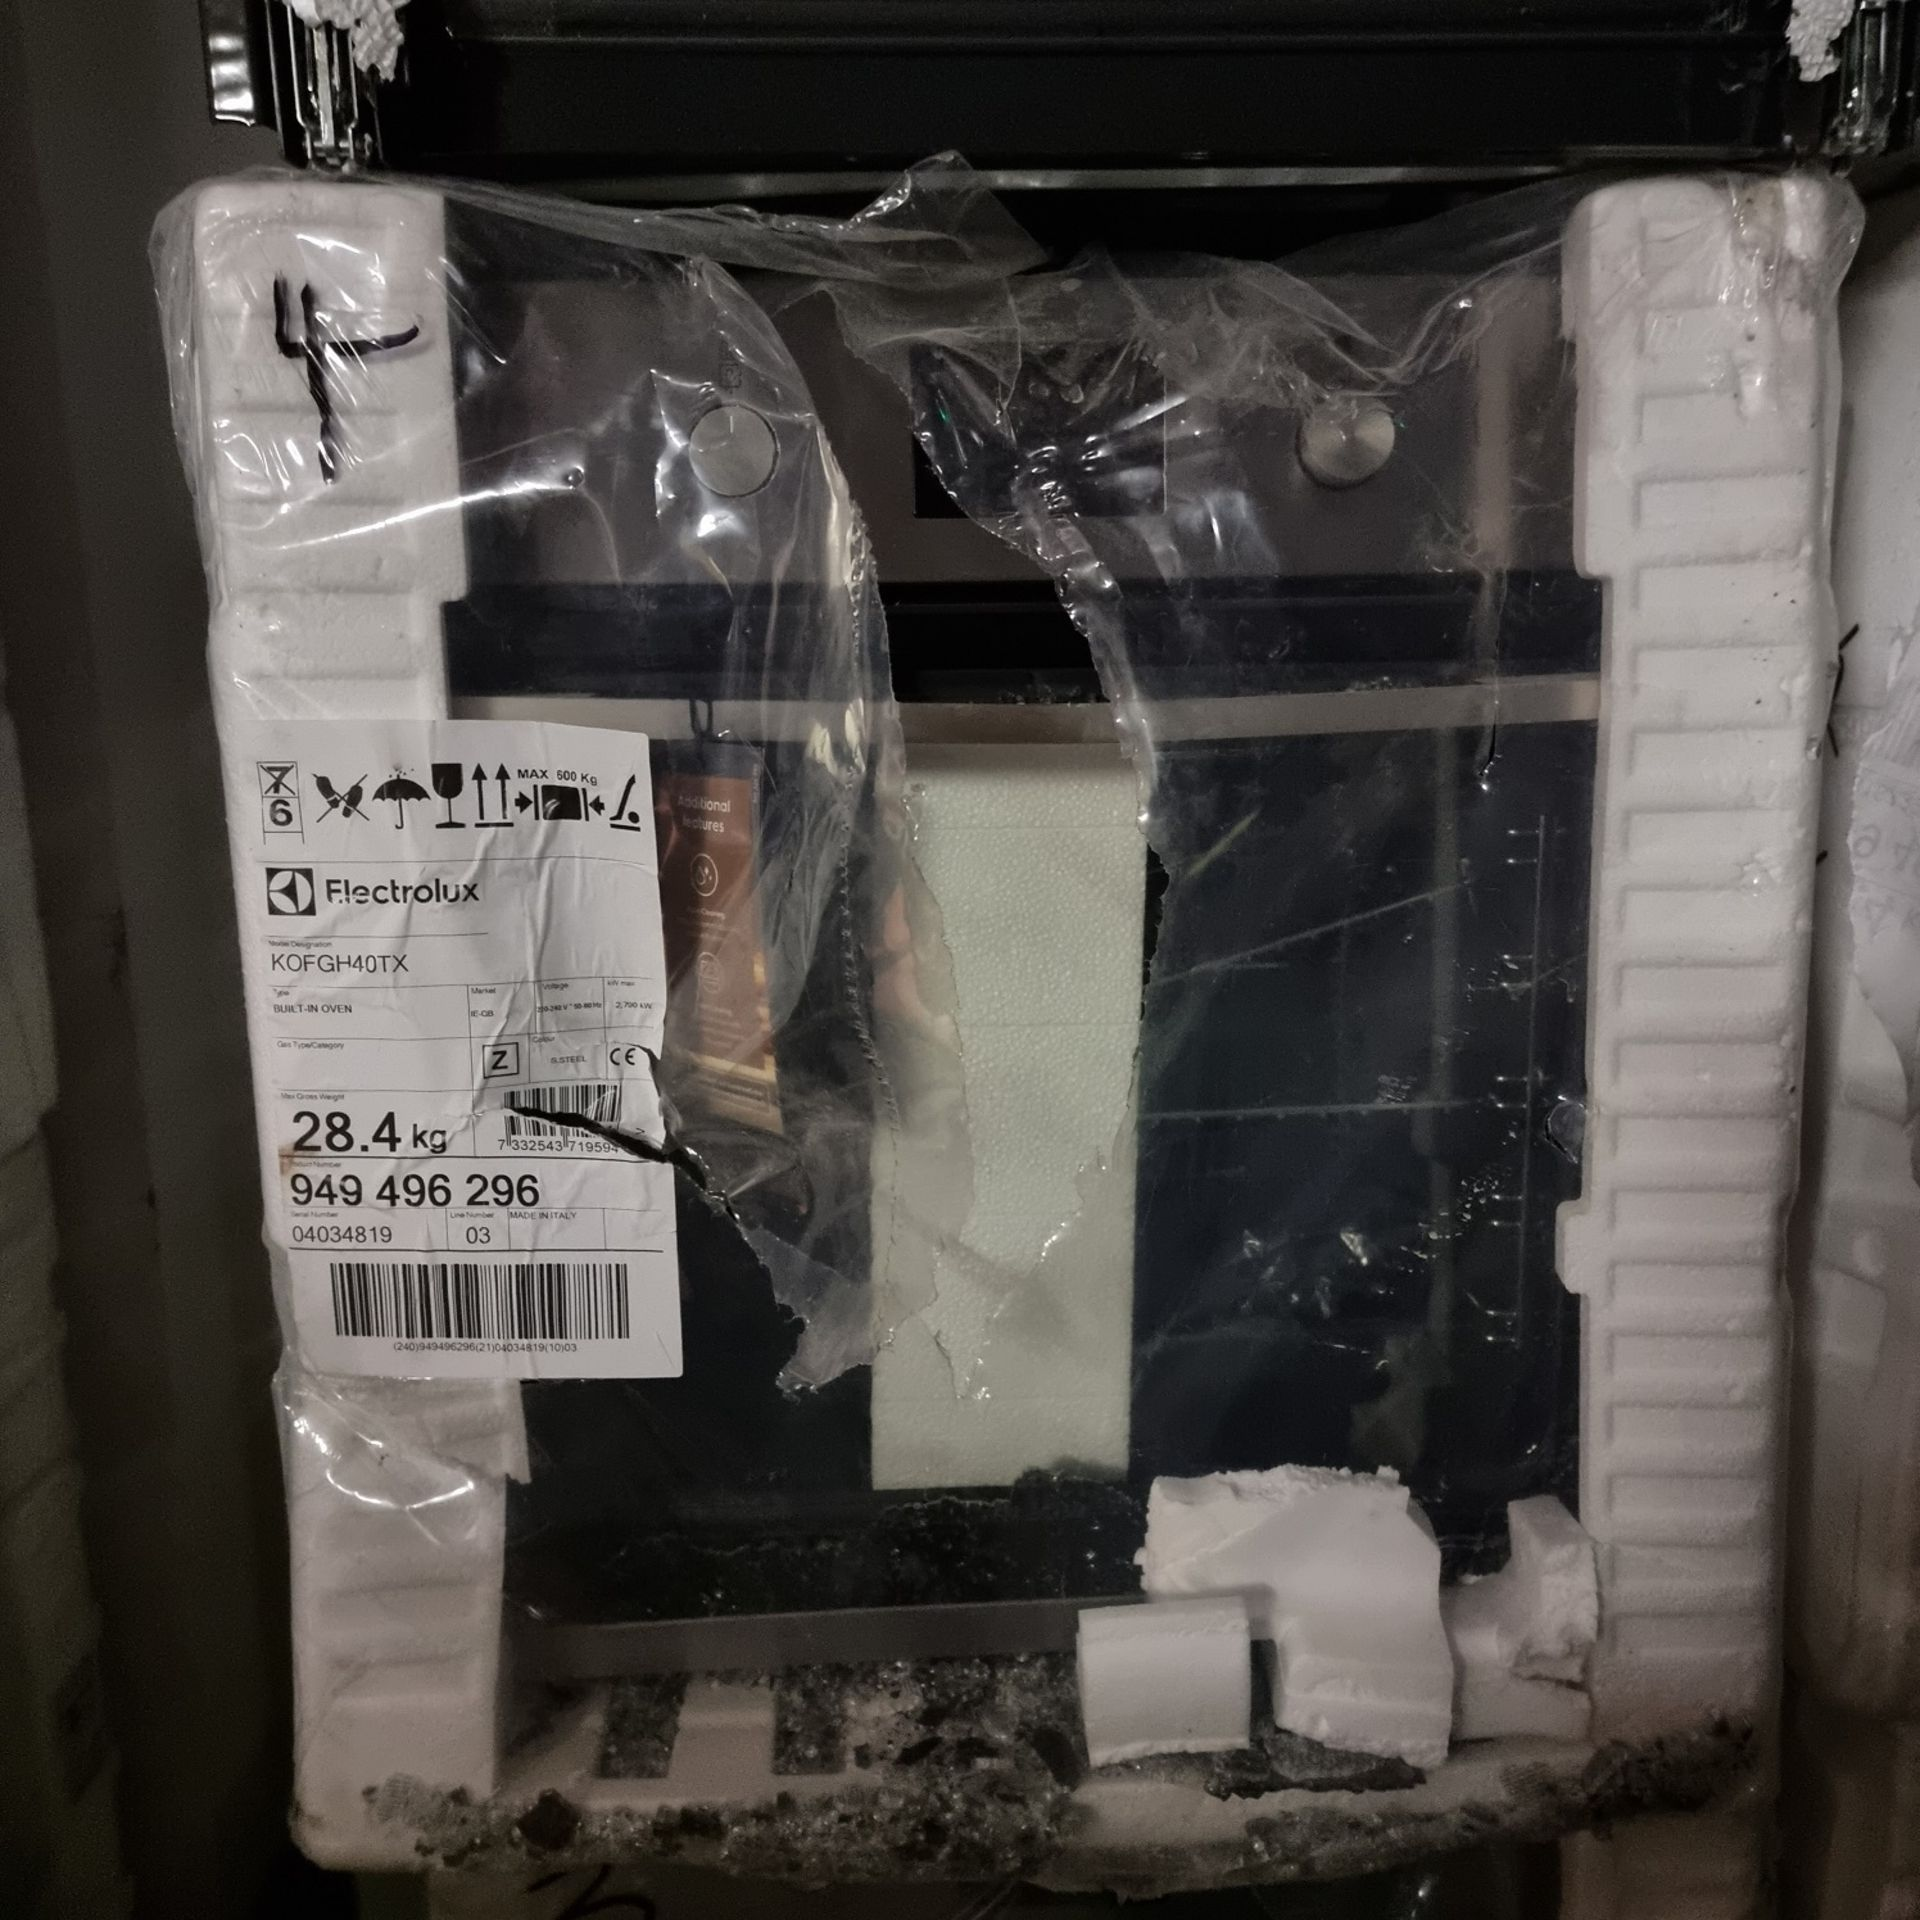 NEW/GRADED PACKAGED Electrolux KOFGH40TX Single Electric Oven (Smashed outer glass and slight handle